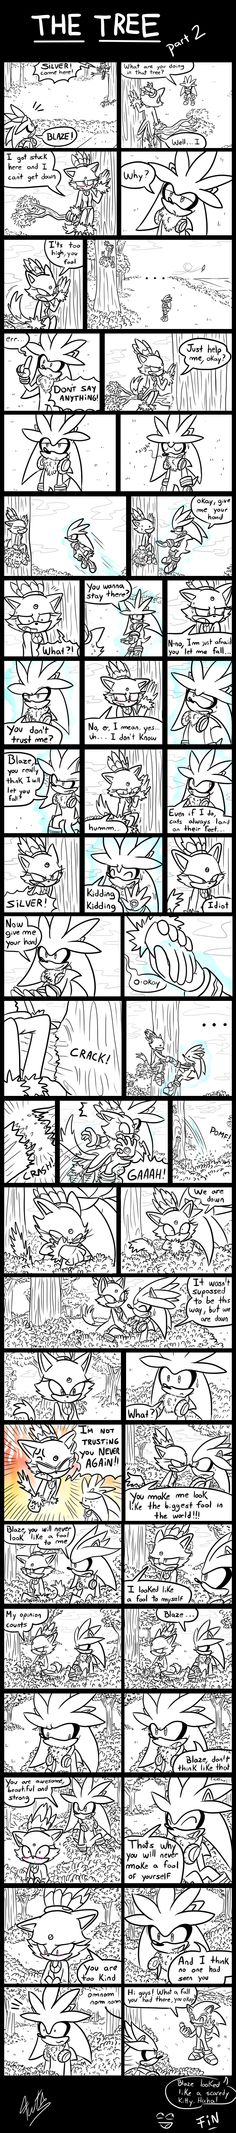 The Tree [Part 2] - (A Silver and Blaze Comic) by Fuutachimaru.deviantart.com on @deviantART